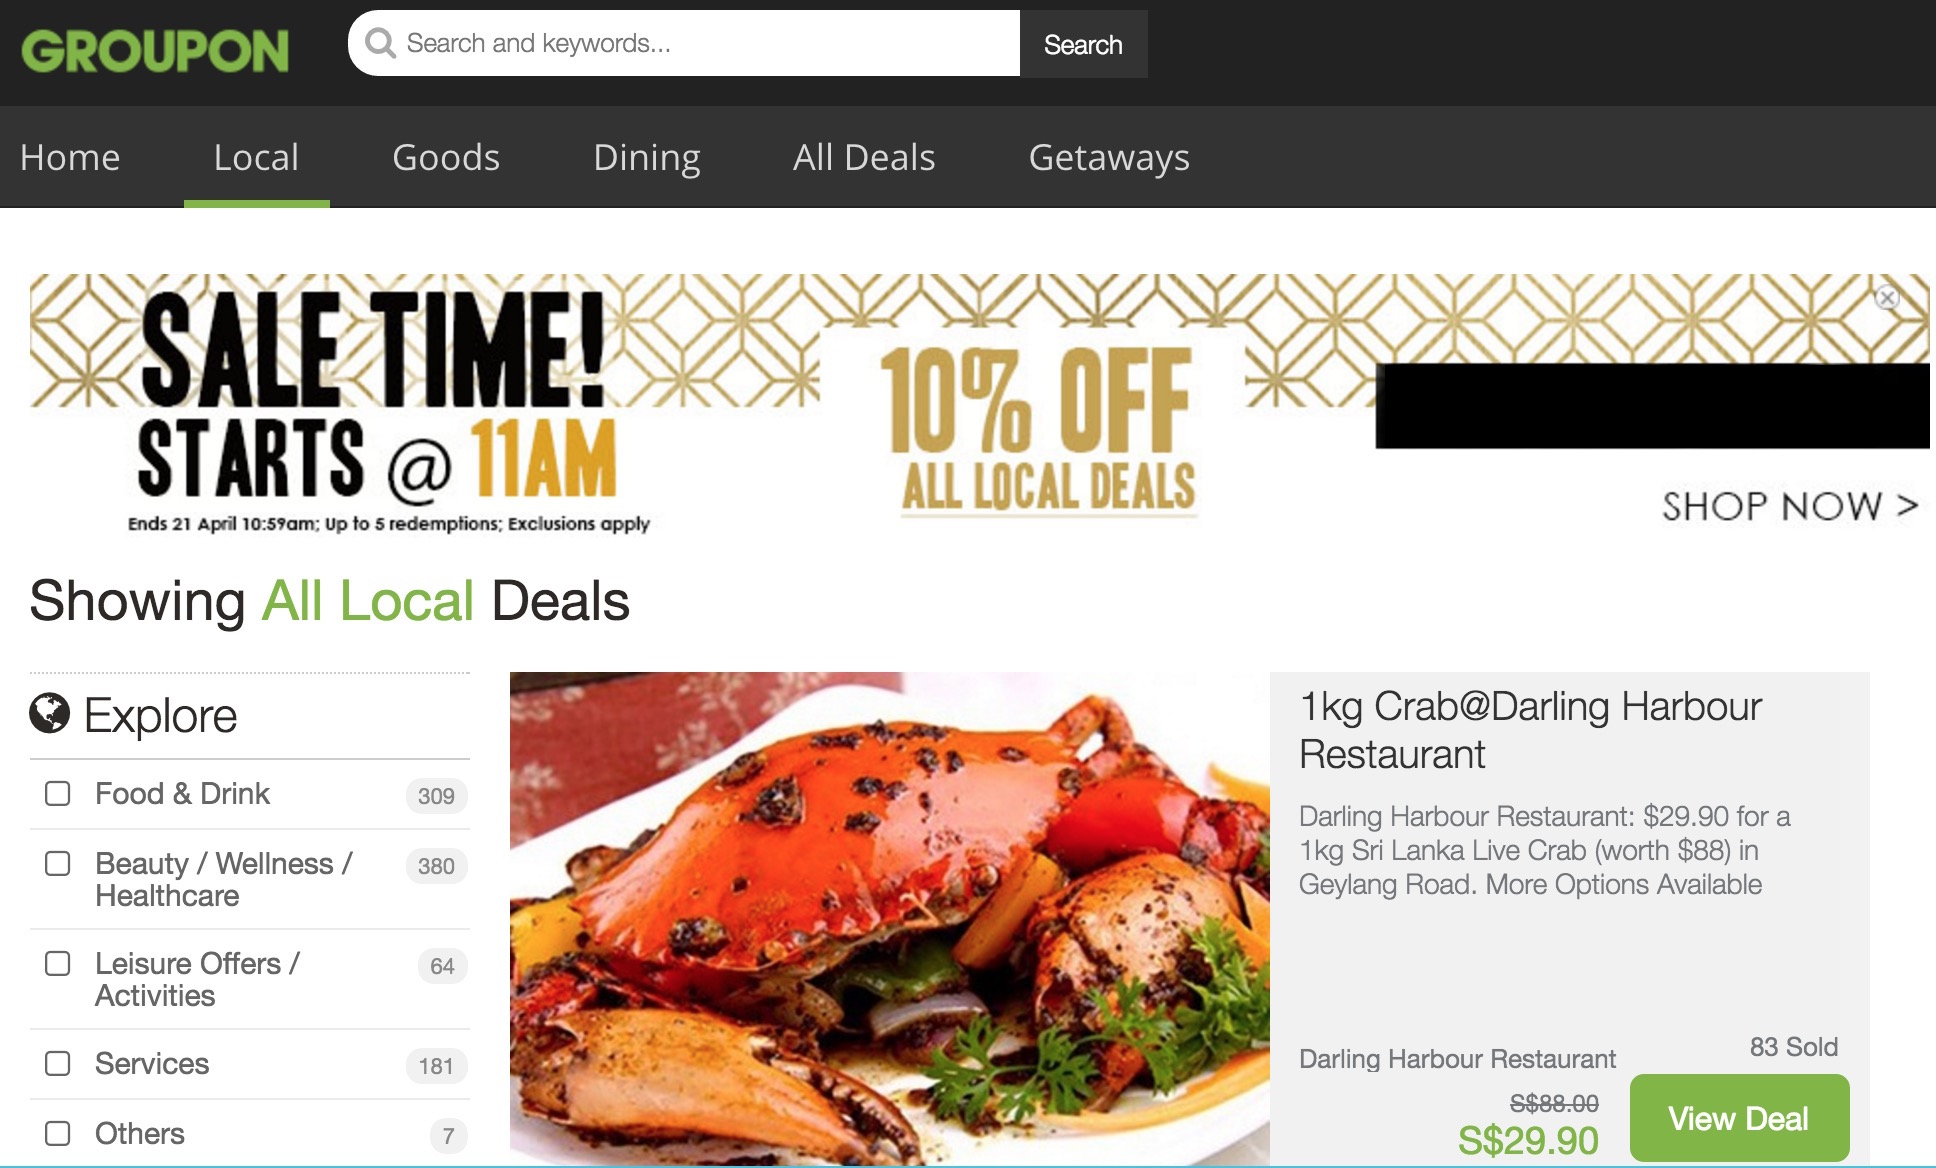 Groupon: Coupon Code for Extra 10% OFF on All Local Deals